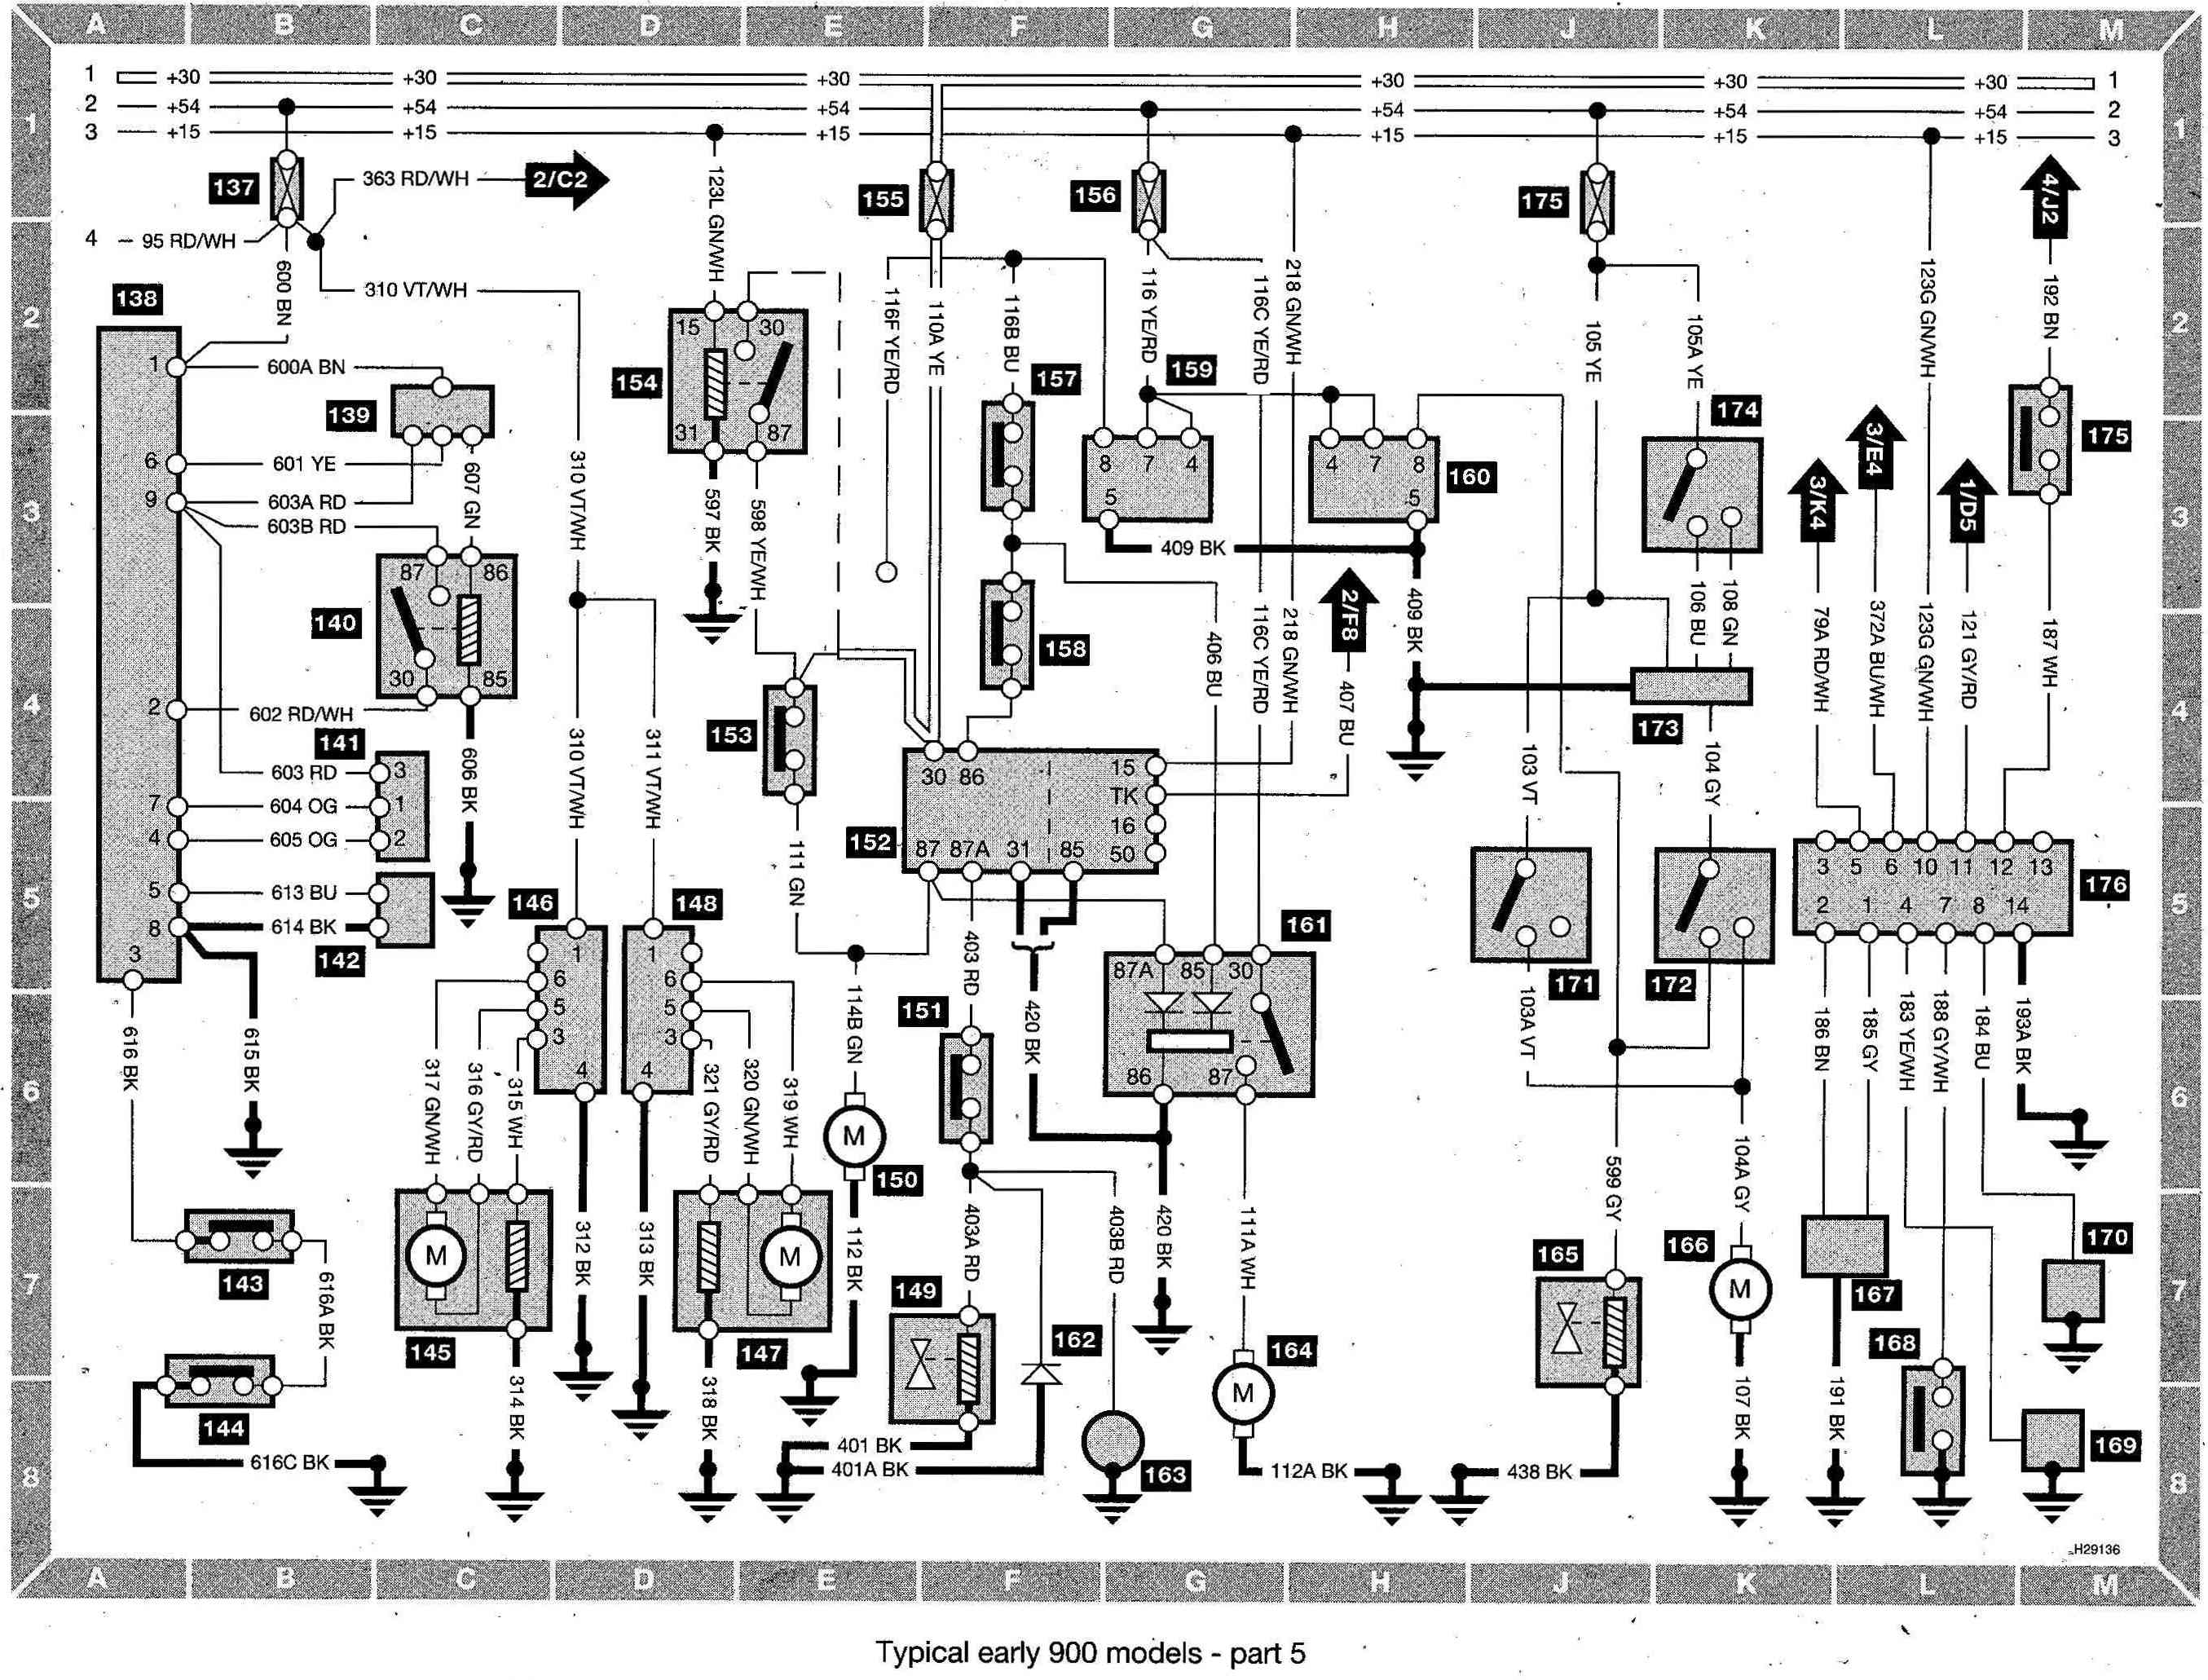 Saab 900 Wiring Diagram Schematic Mazda Cx 5 Fuse Box Index Of Early Models 9